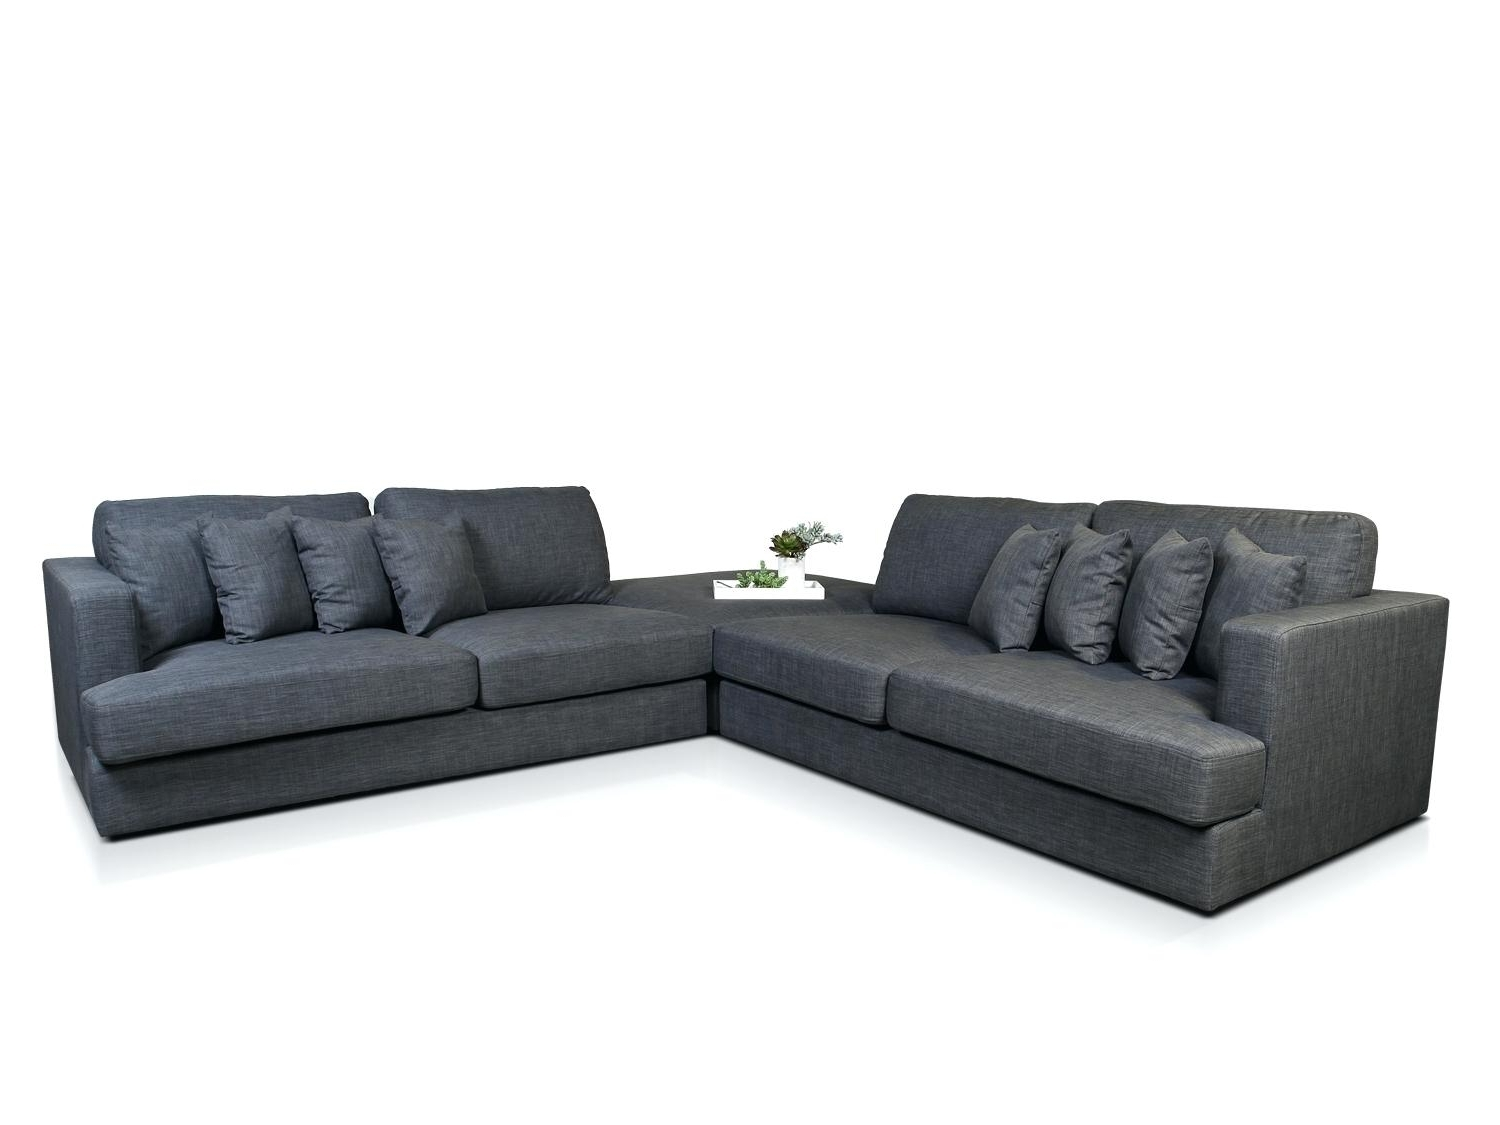 Favorite Small Modular Sofas In Modular Sofas Bedroom Furniture For Small Spaces Uk Used Sofa Sale (View 9 of 15)